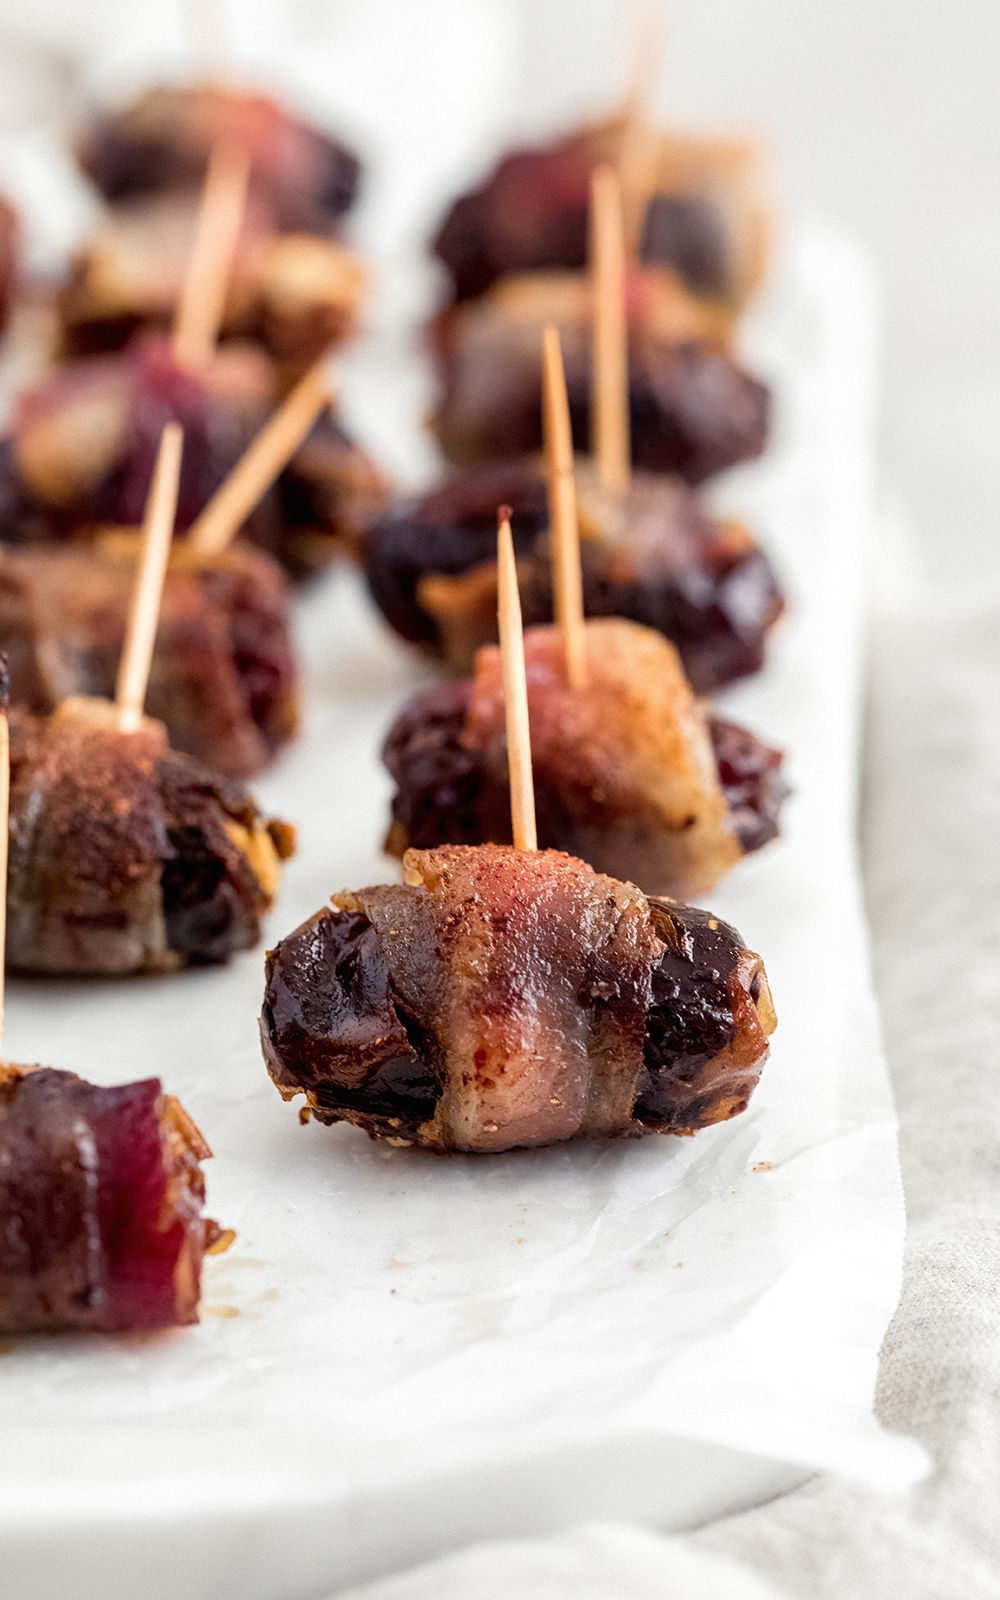 Sweet and savory bacon wrapped dark chocolate amp goat cheese stuffed dates make a fun, delicious app